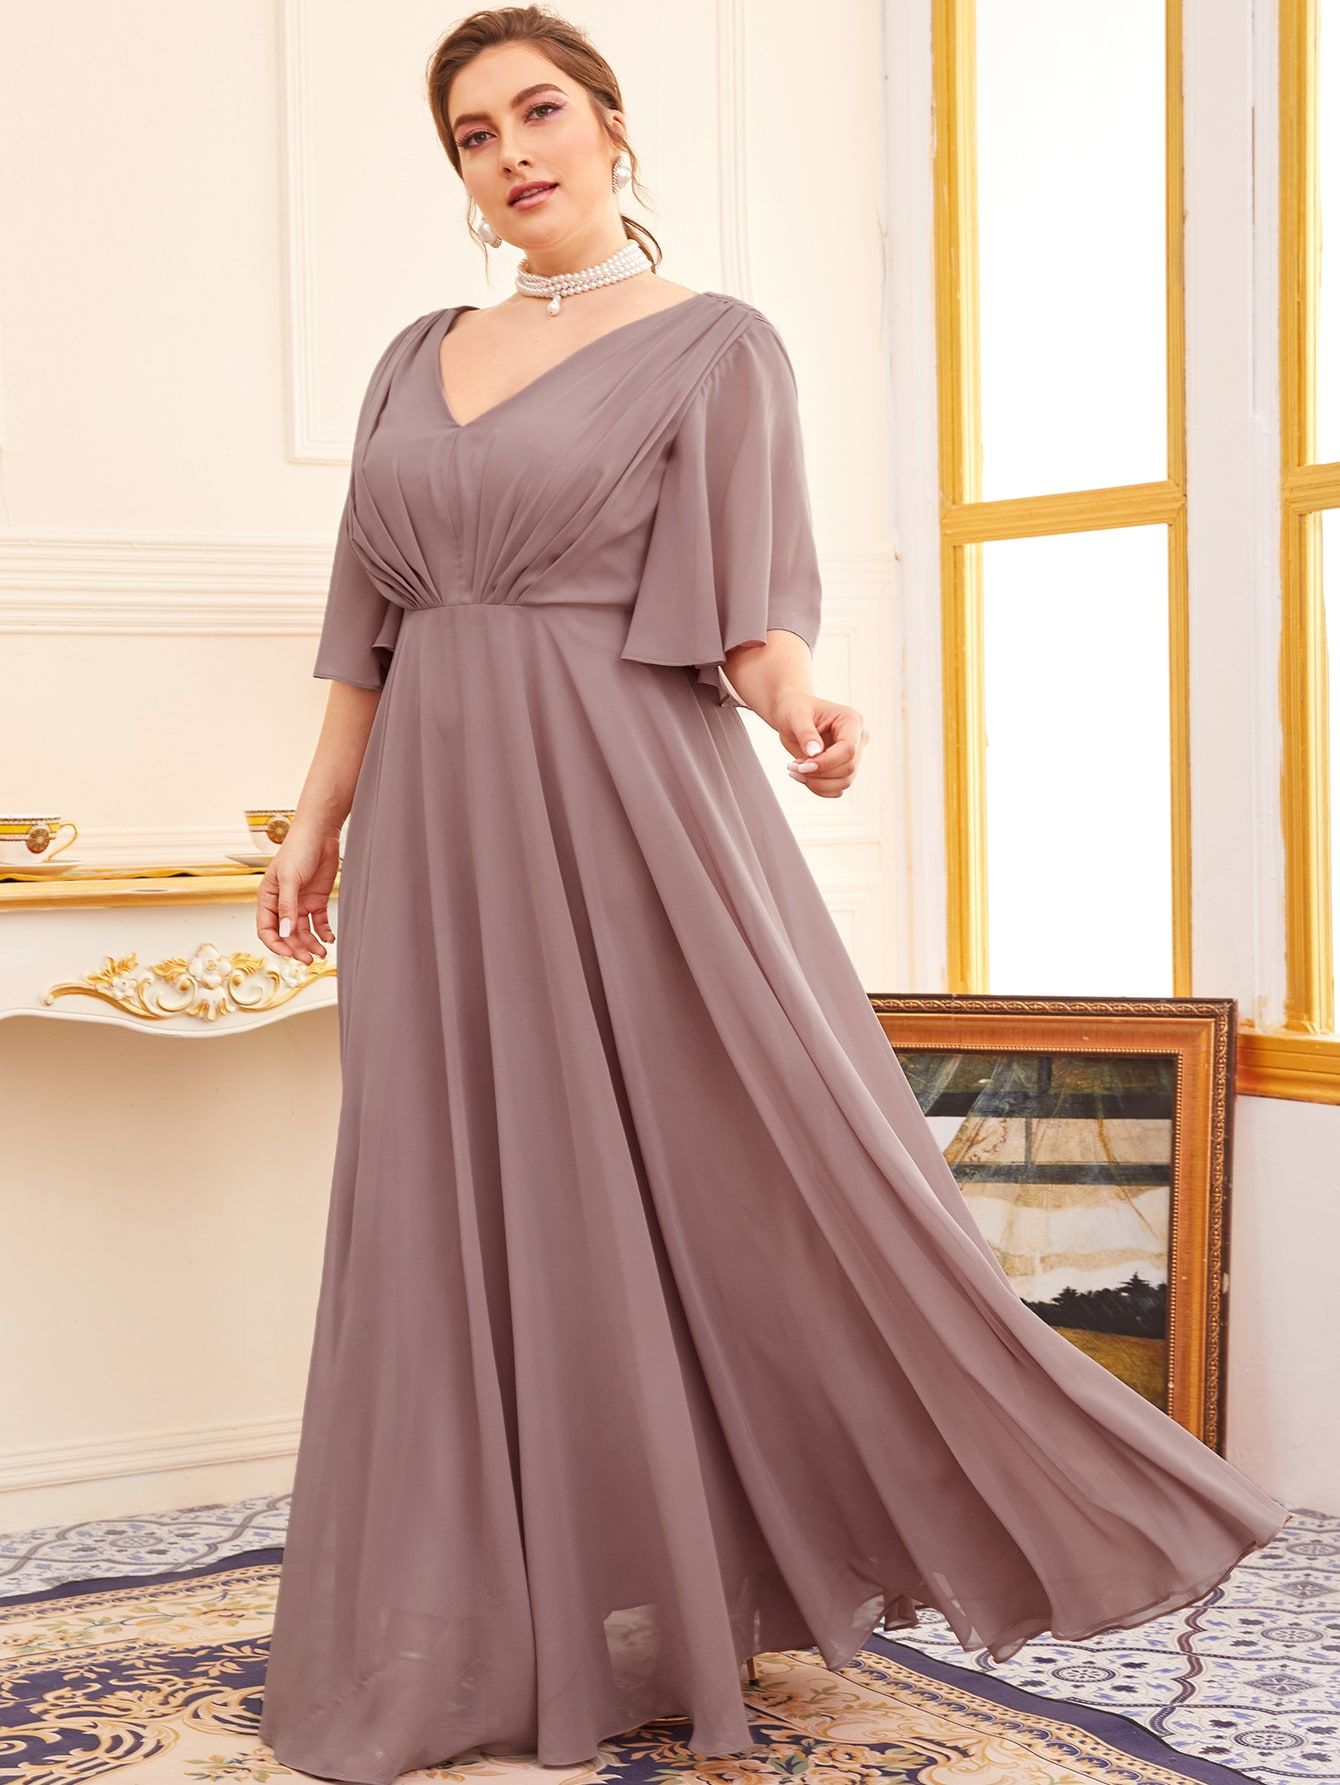 Plus Butterfly Sleeve Double V Neck A Line Dress Shein Usa In 2021 Dresses Maxi Dress Prom Fashion Hacks Clothes [ 1785 x 1340 Pixel ]